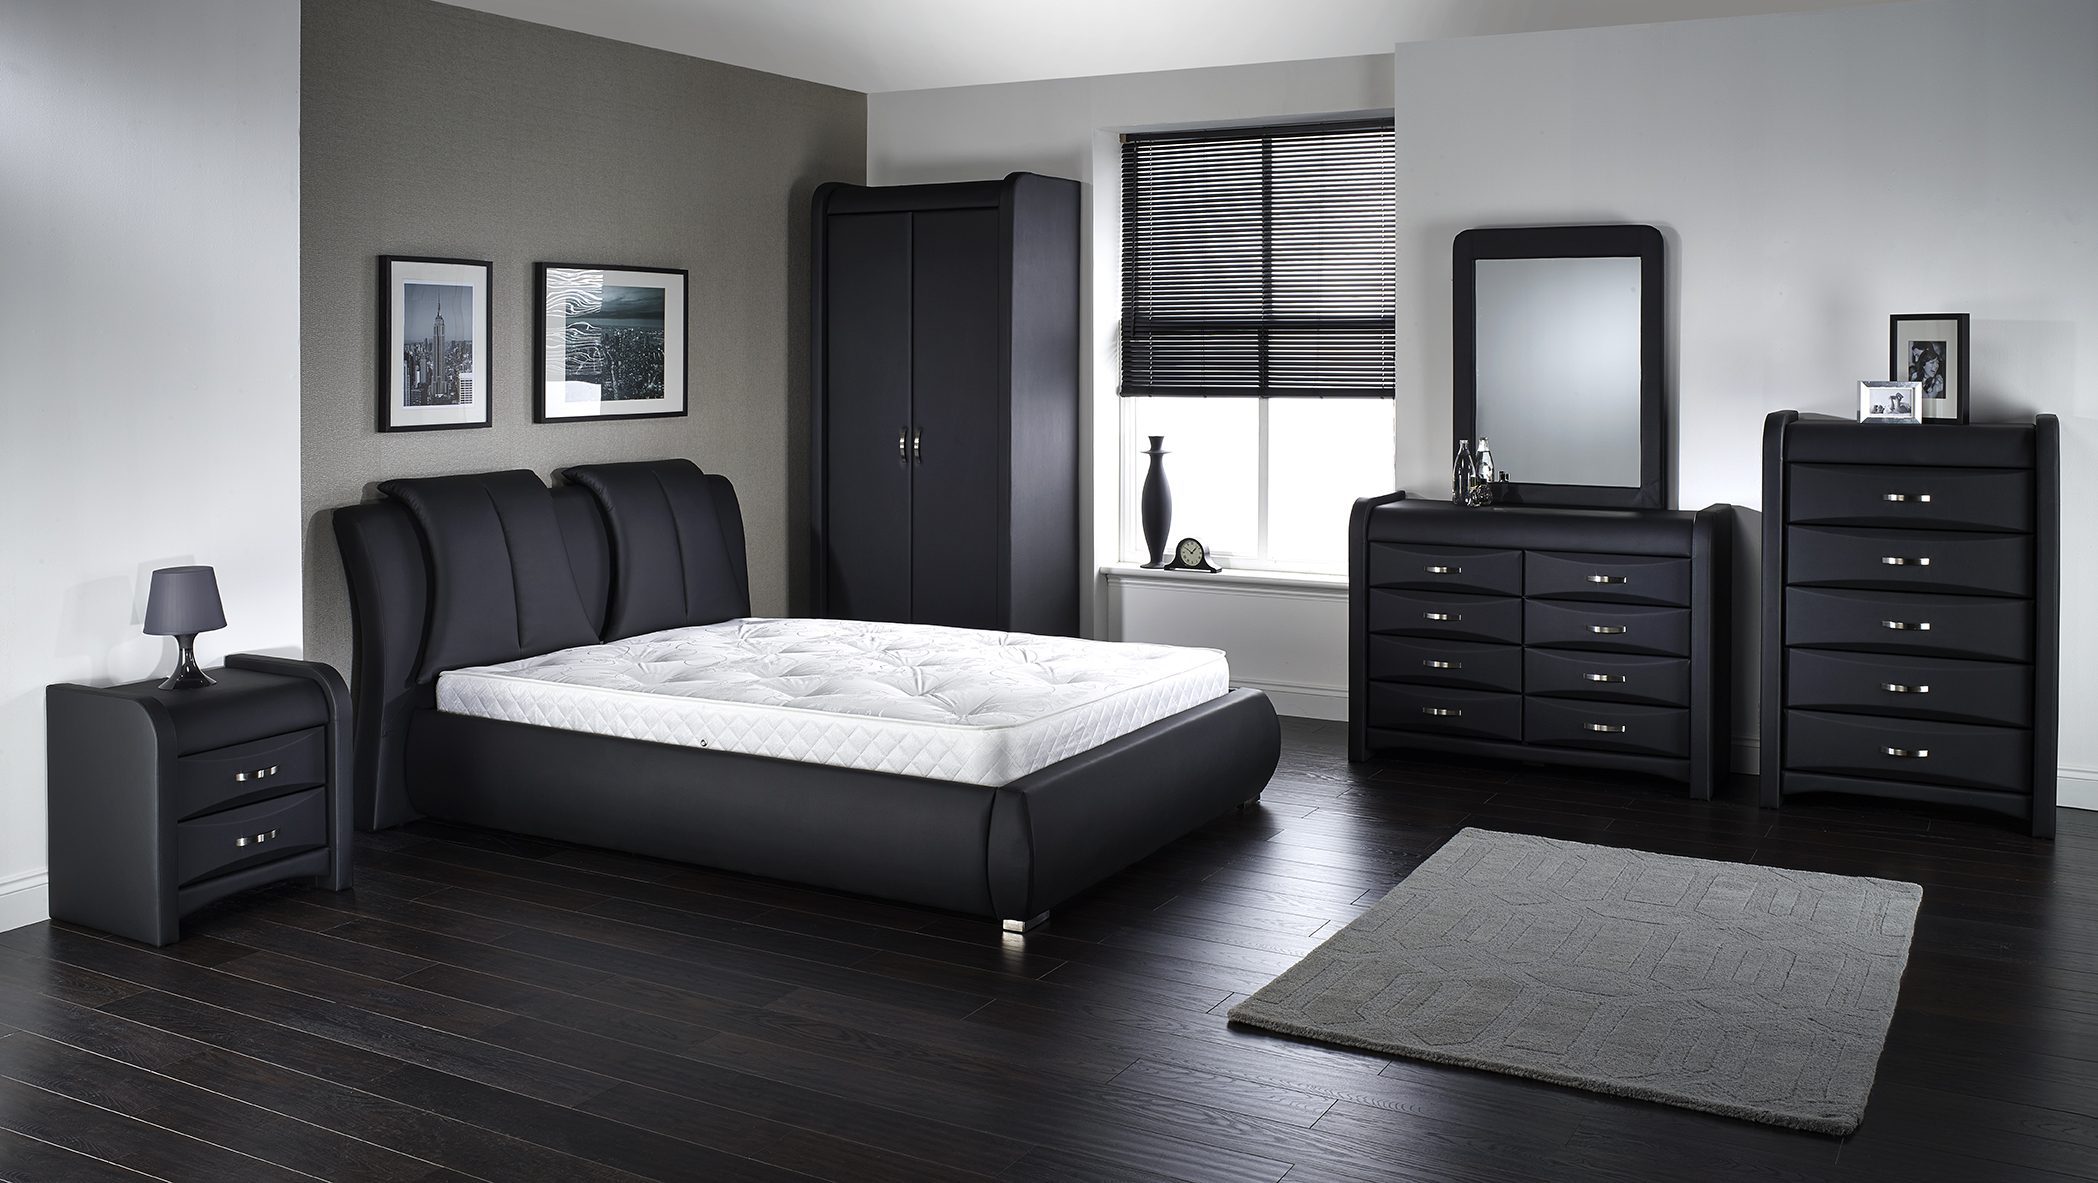 brown leather bedroom furniture. Azure-1. Home / Products Bedroom Furniture Brown Leather A